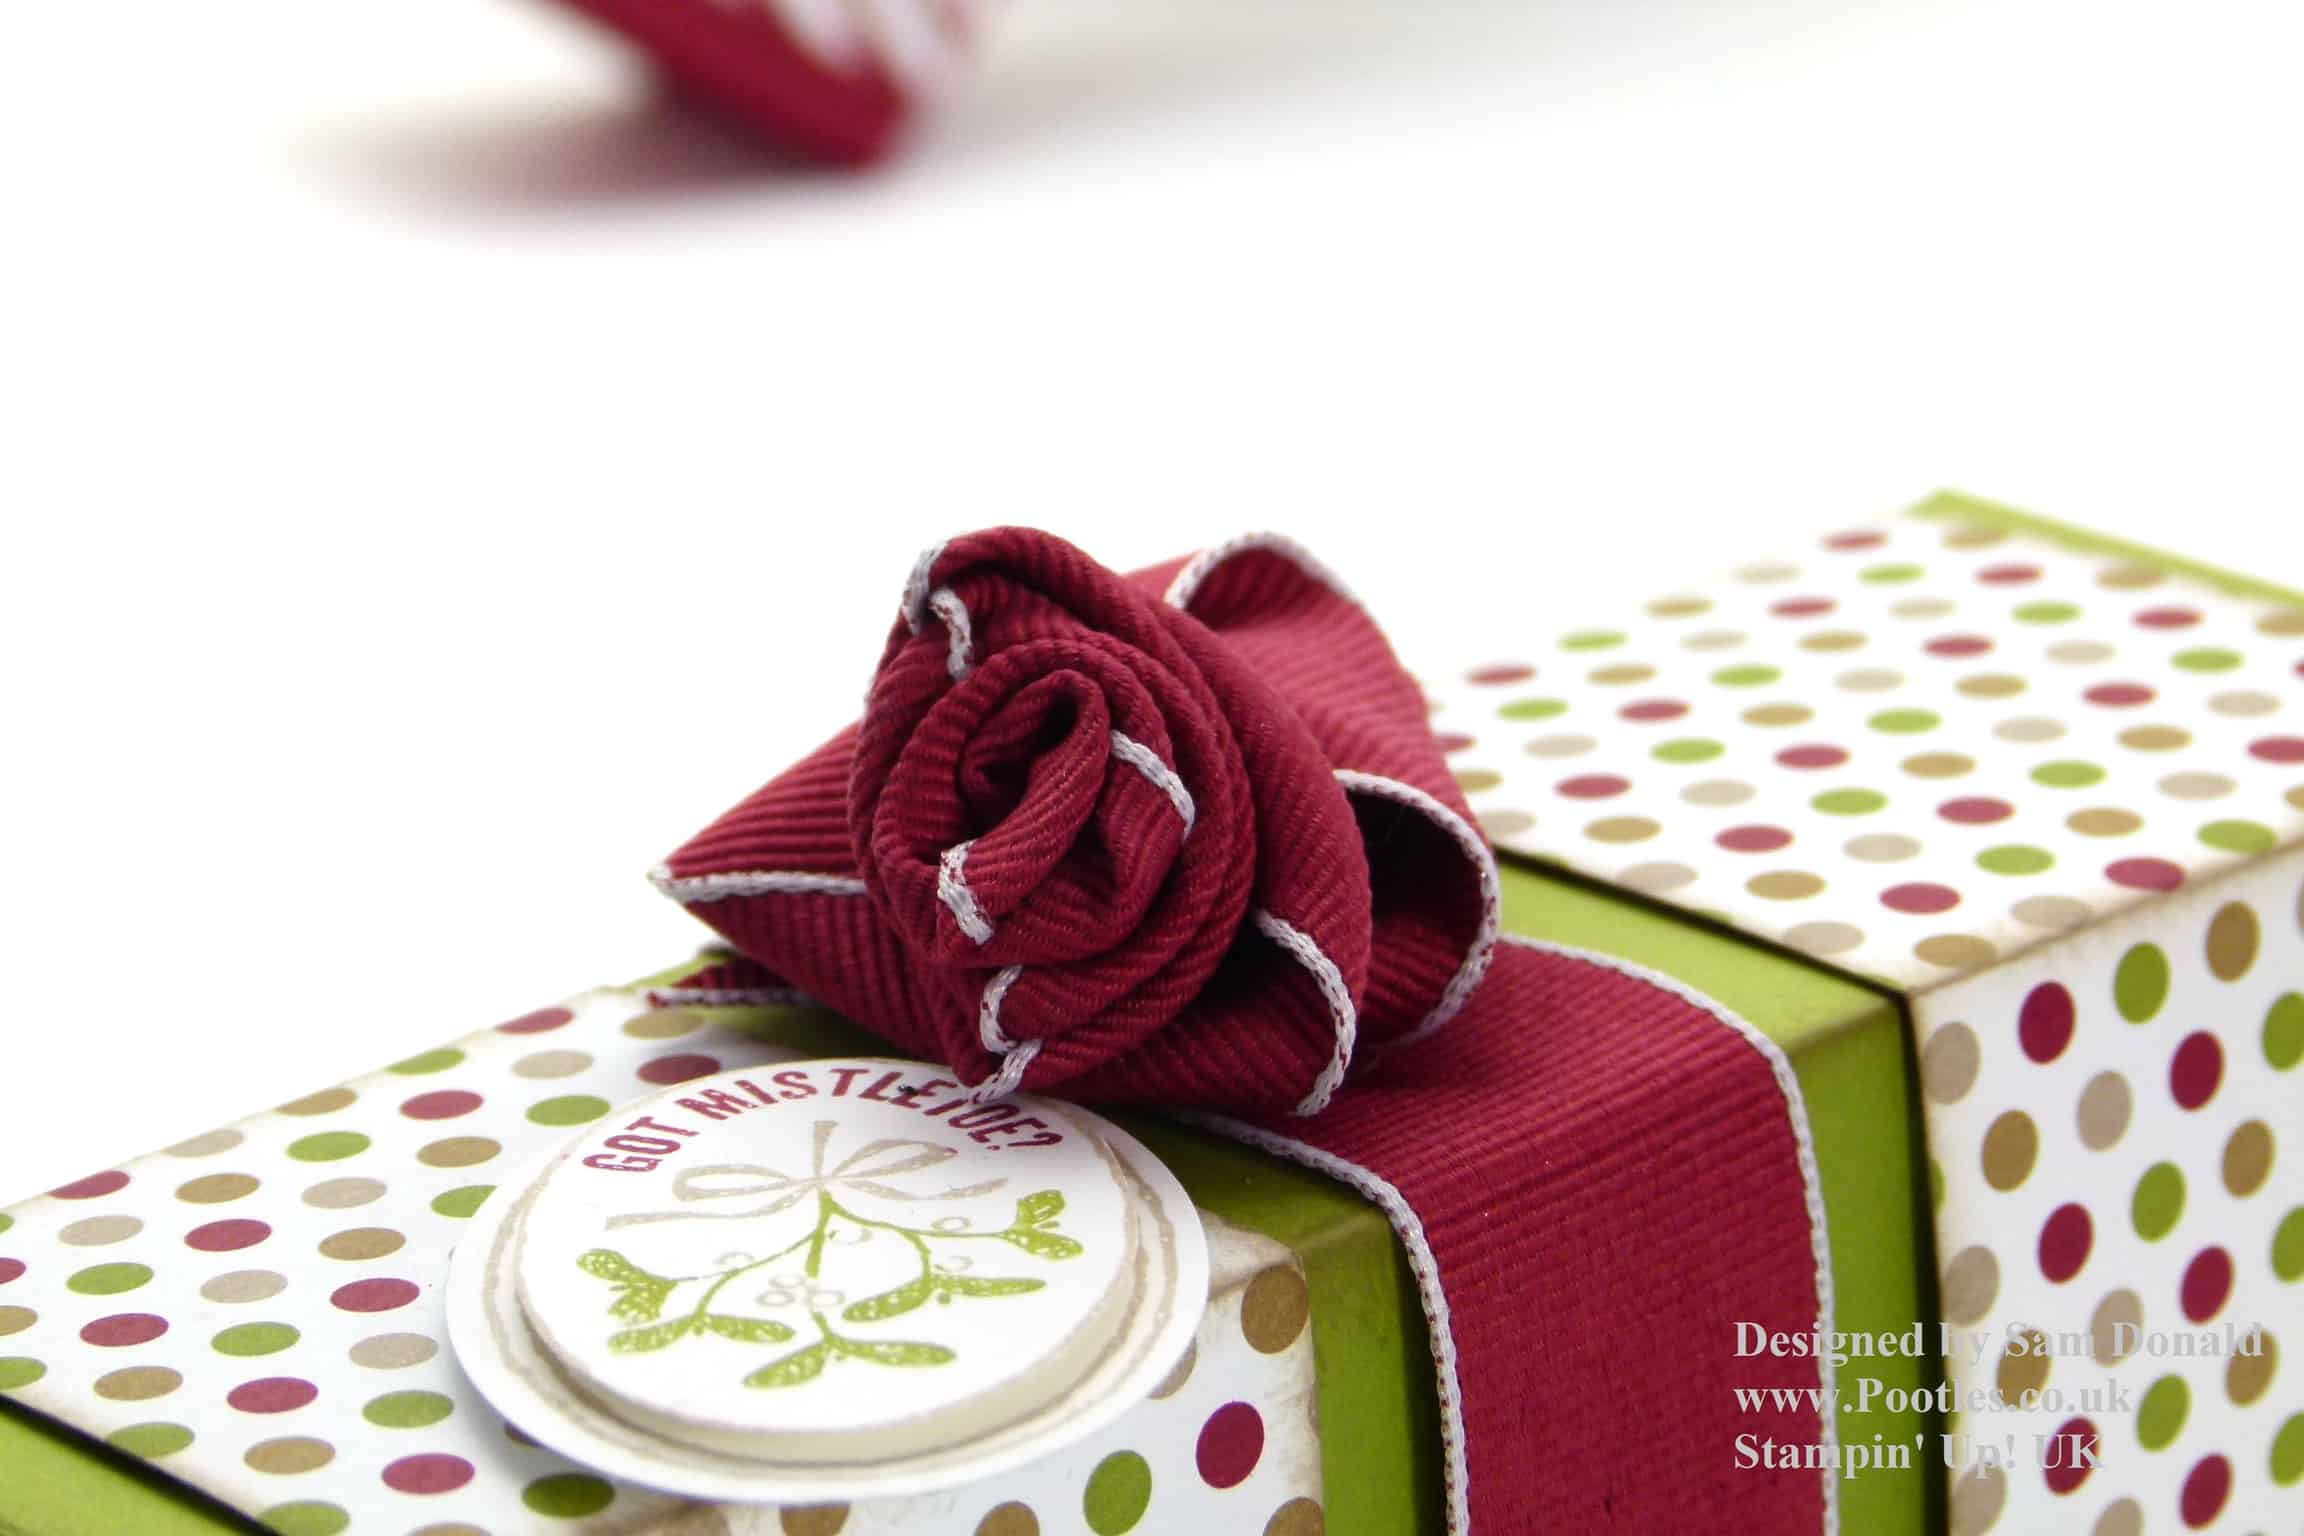 Pootles Stampin Up Ribbon Rose Tutorial